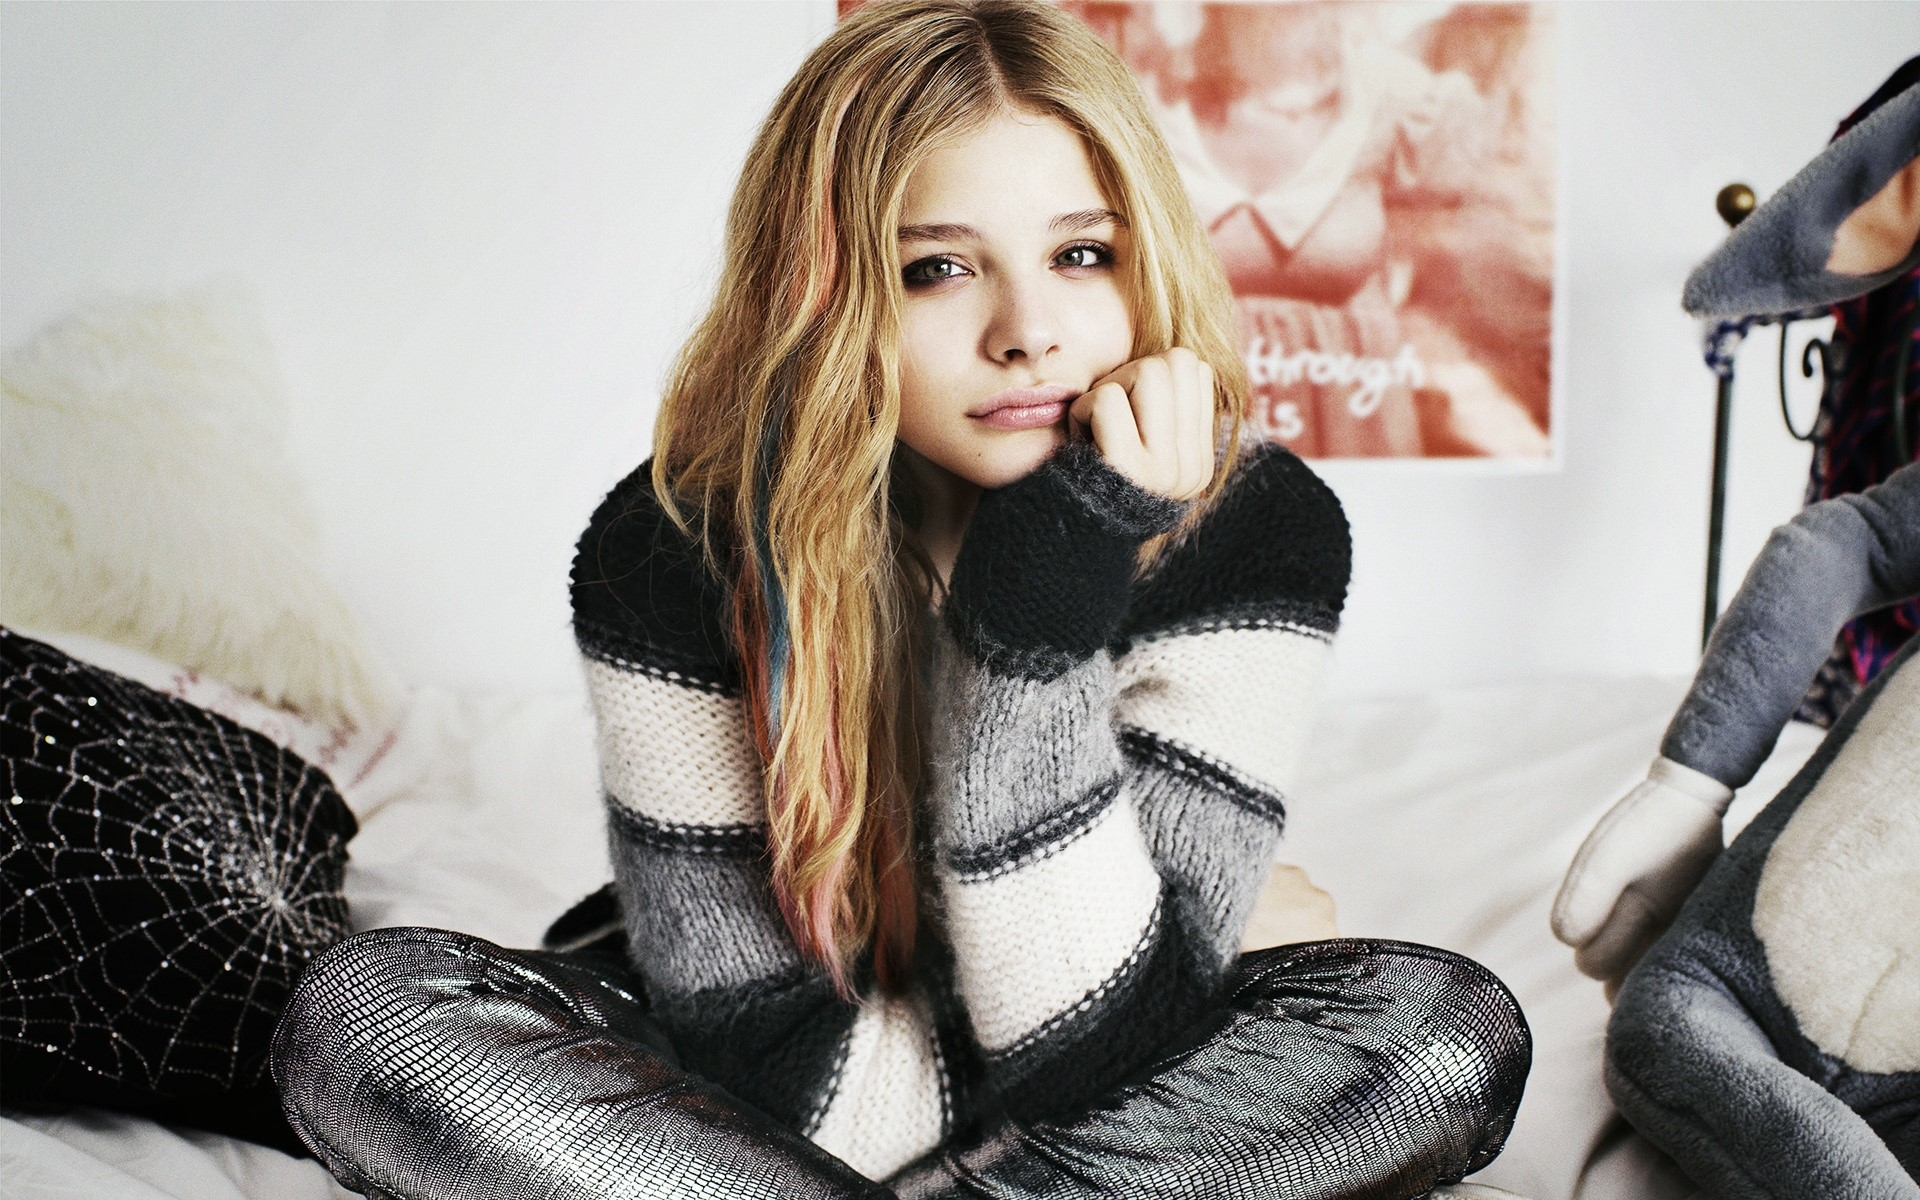 Wallpaper Chloe Moretz in a room